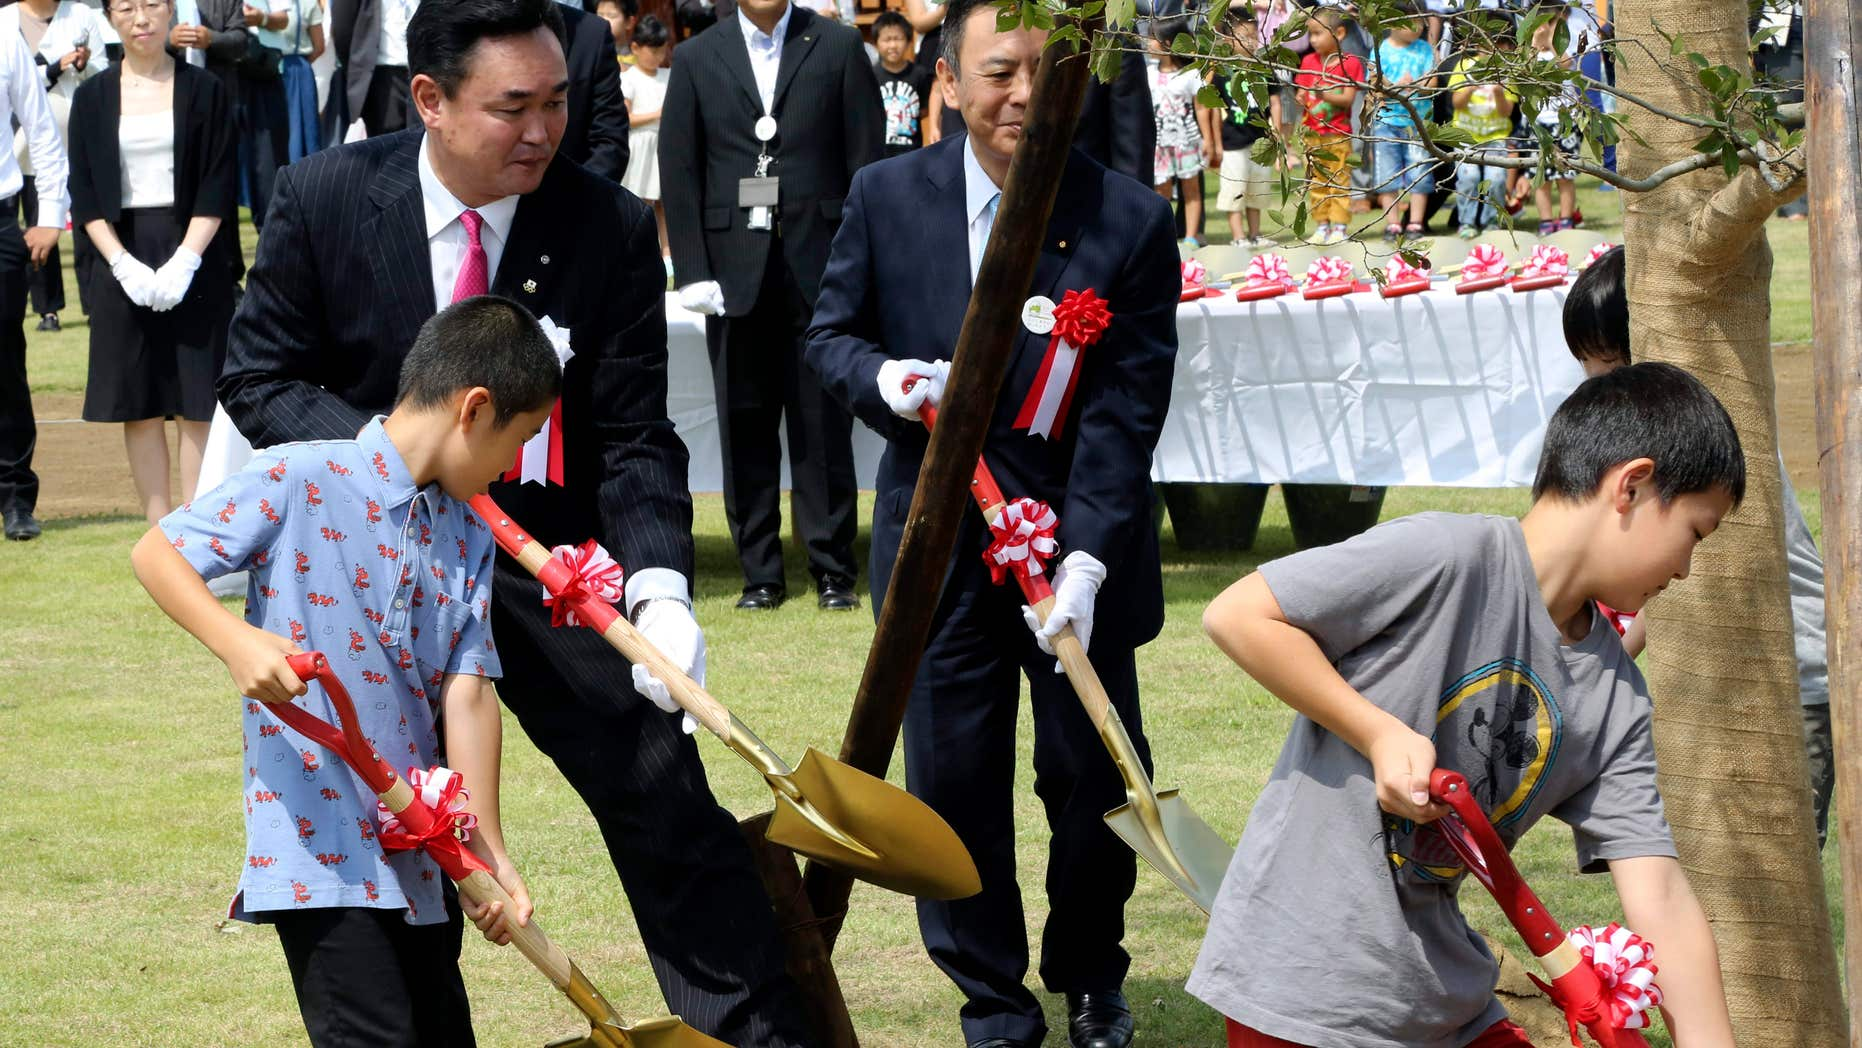 Sept. 5, 2015: Noraha Mayor Yukiei Matsumoto, rear left, plants a tree with children of Naraha residents during an event in Naraha, Fukushima, northern Japan.